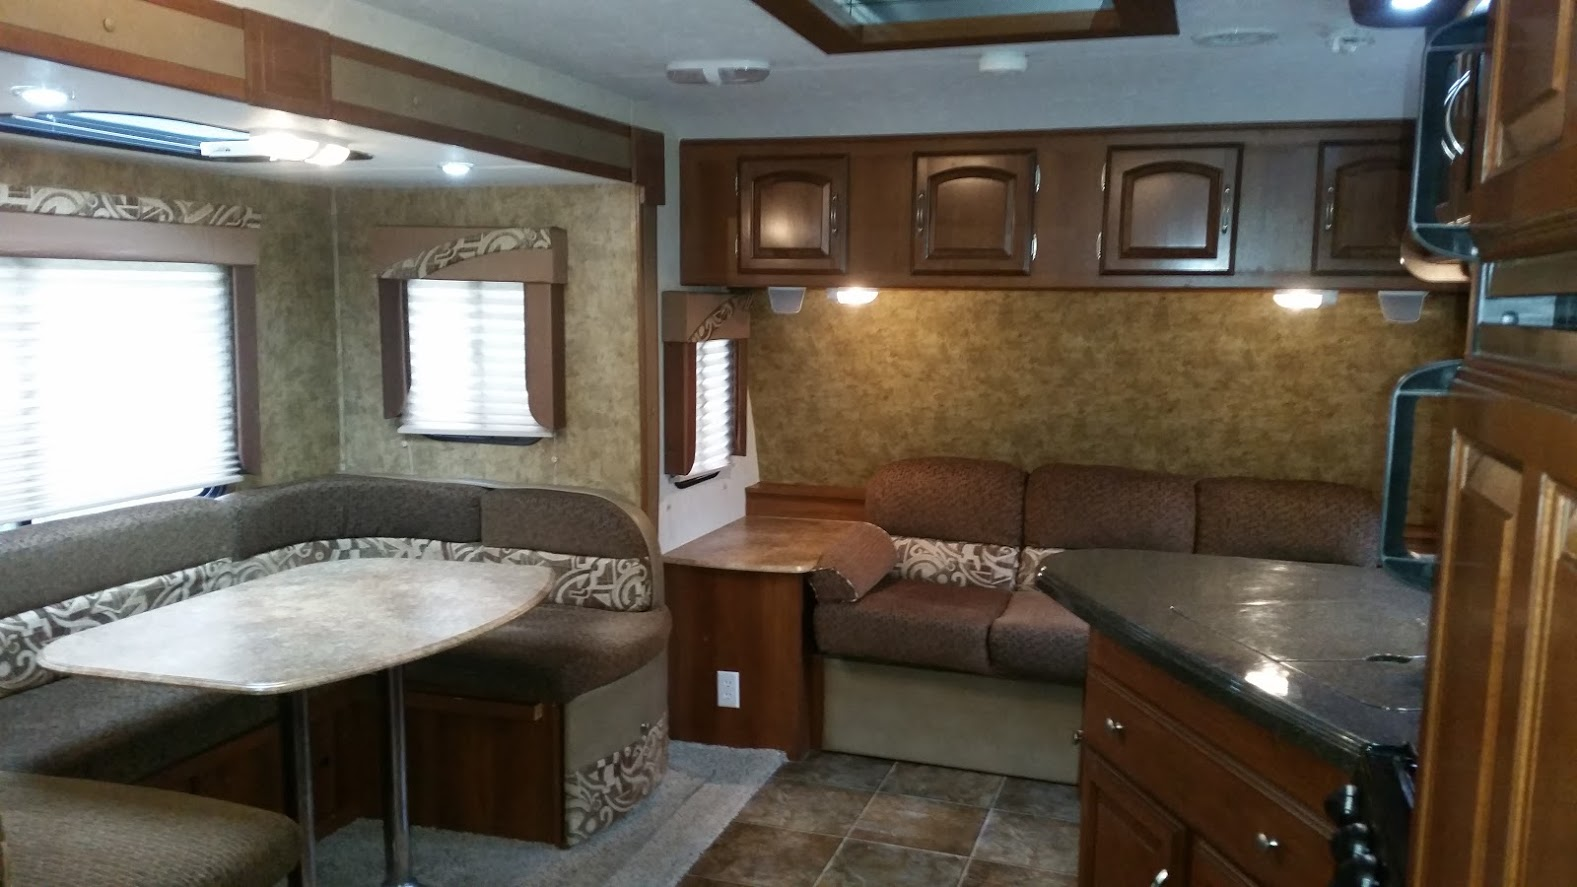 2013 Coachmen Freedom - Inside#2.jpg